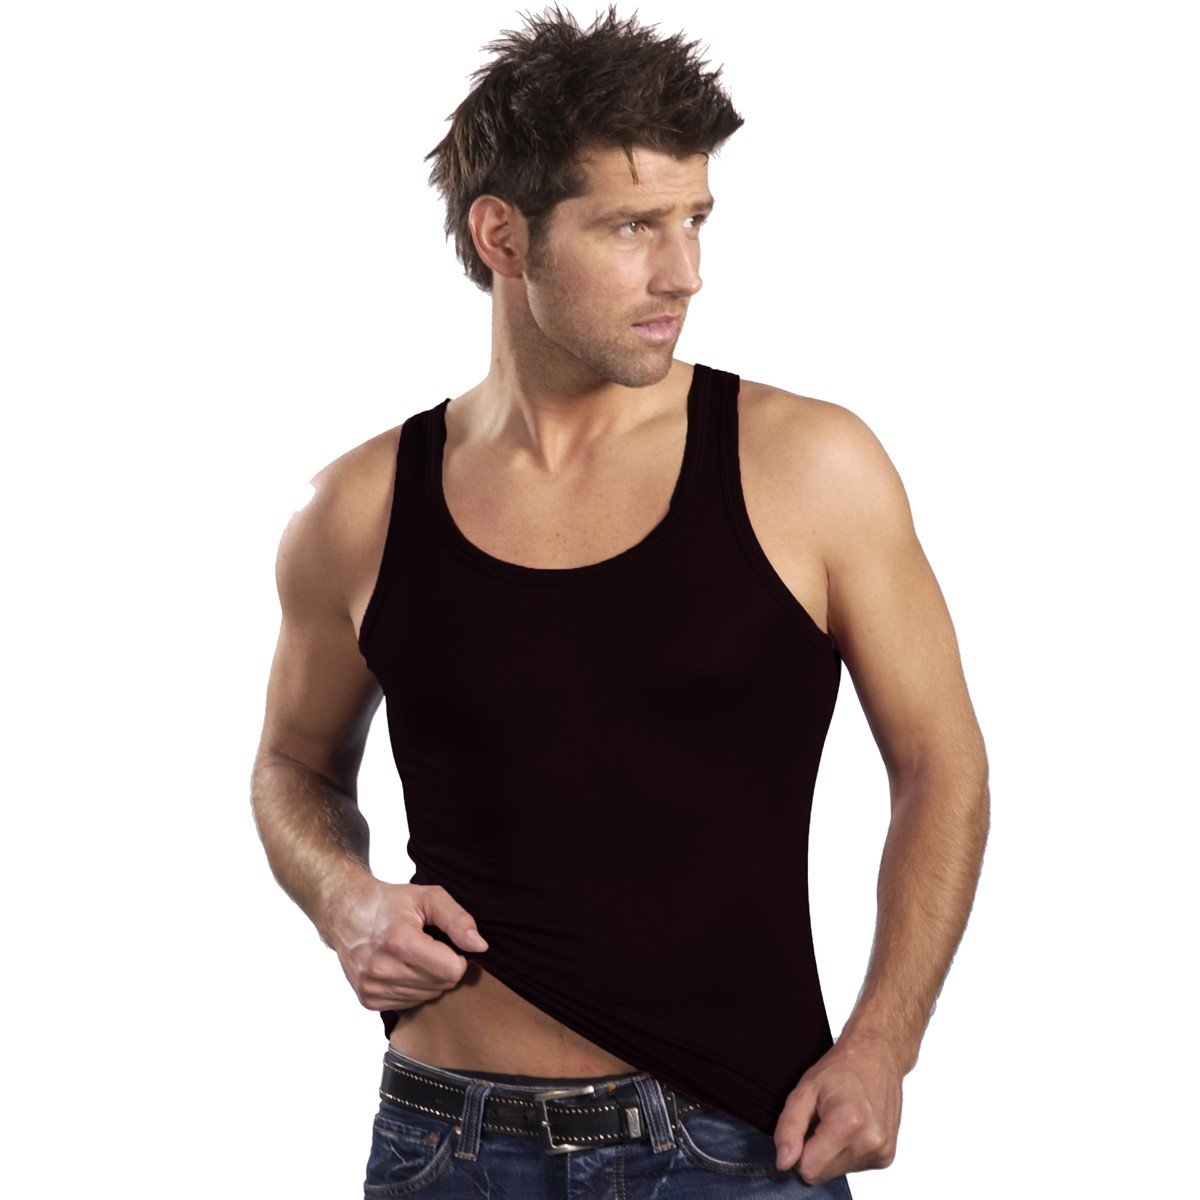 muscle shirt made of 100/% EU cotton many colours HERMKO 3000-4 mens tank top made in EU